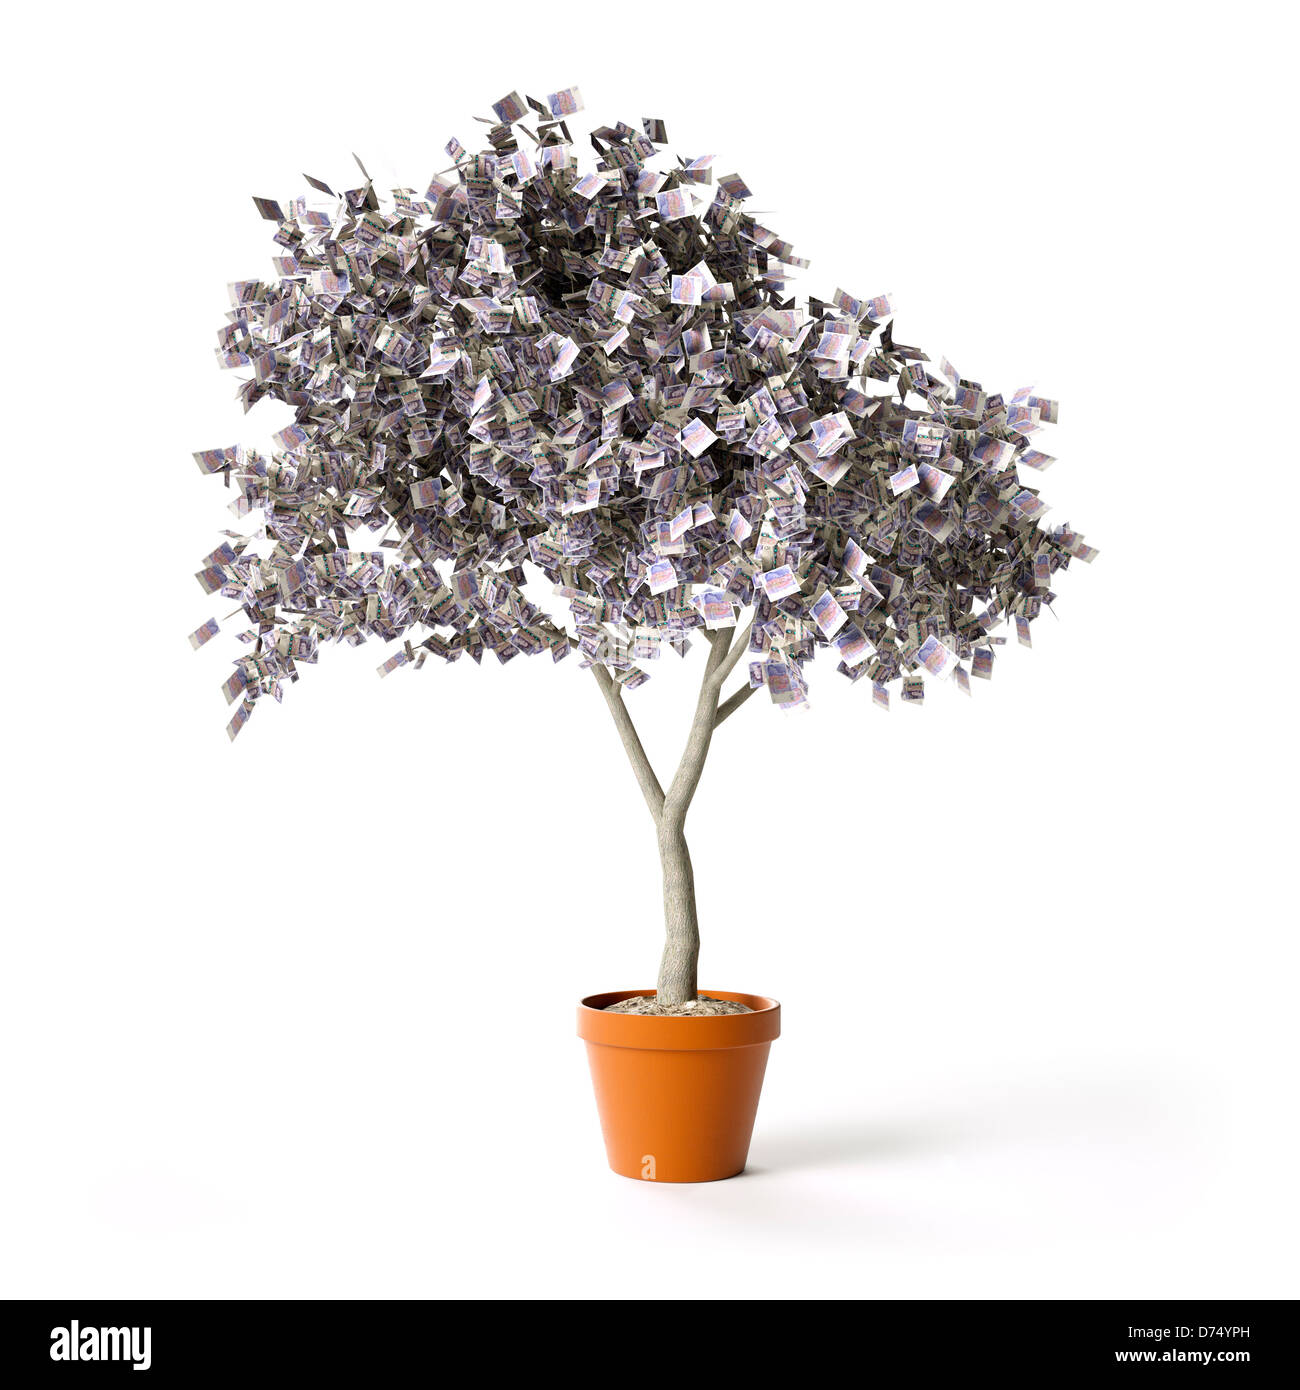 Money tree of £20 sterling notes - financial growth/savings concept - cut out of white background - Stock Image